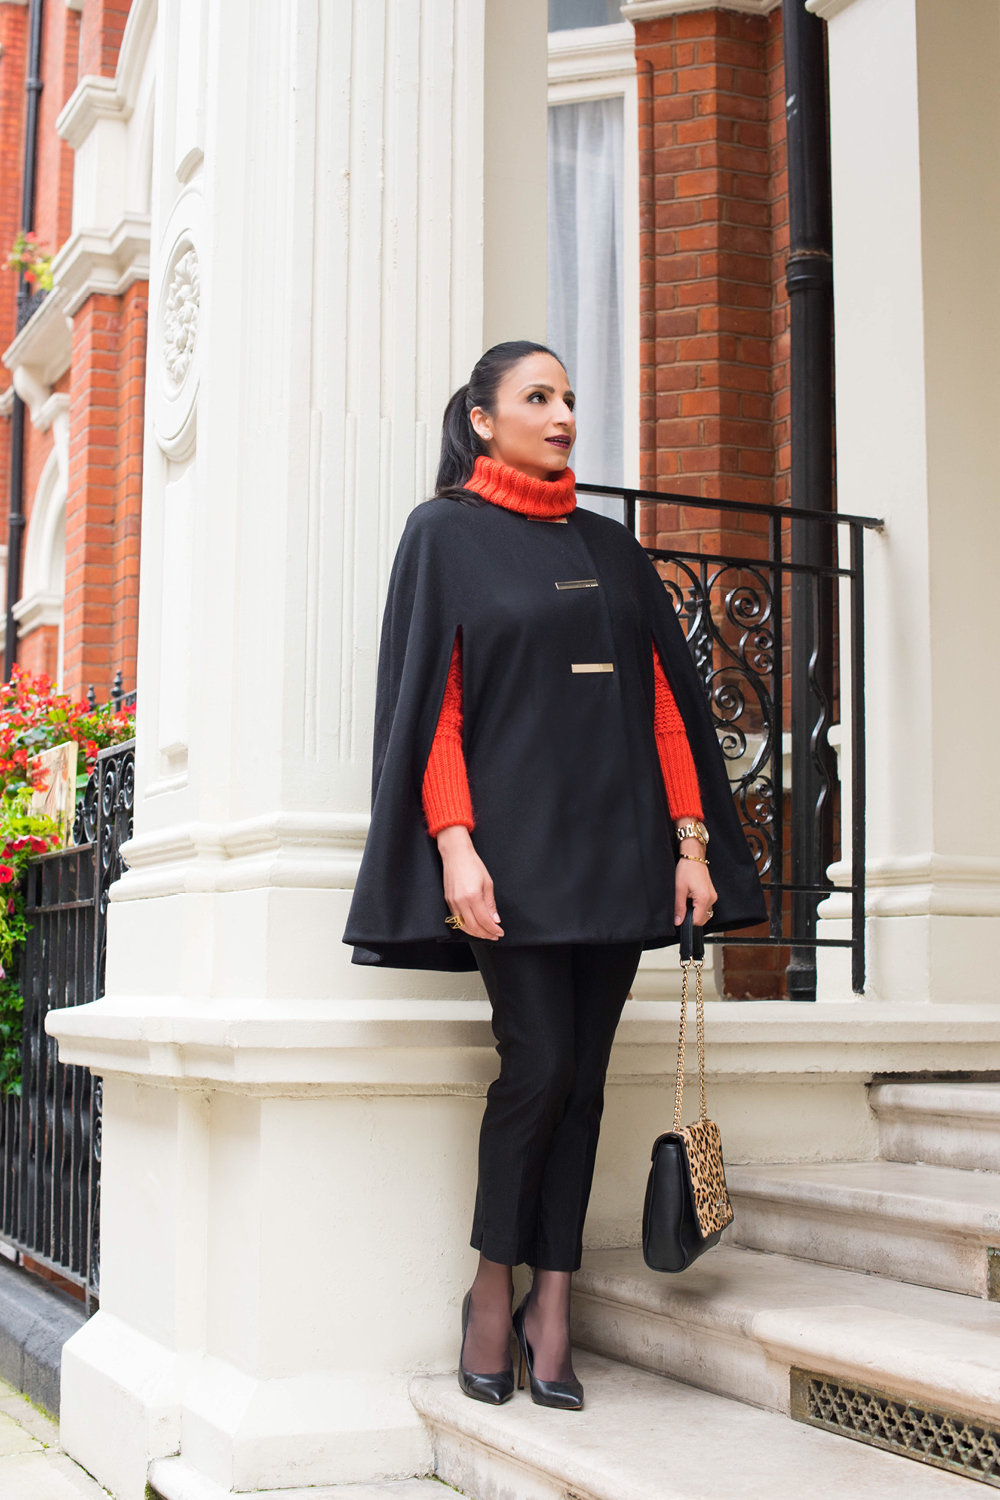 London Winter Style Tips: Woolen Cape; Isha's Verdict